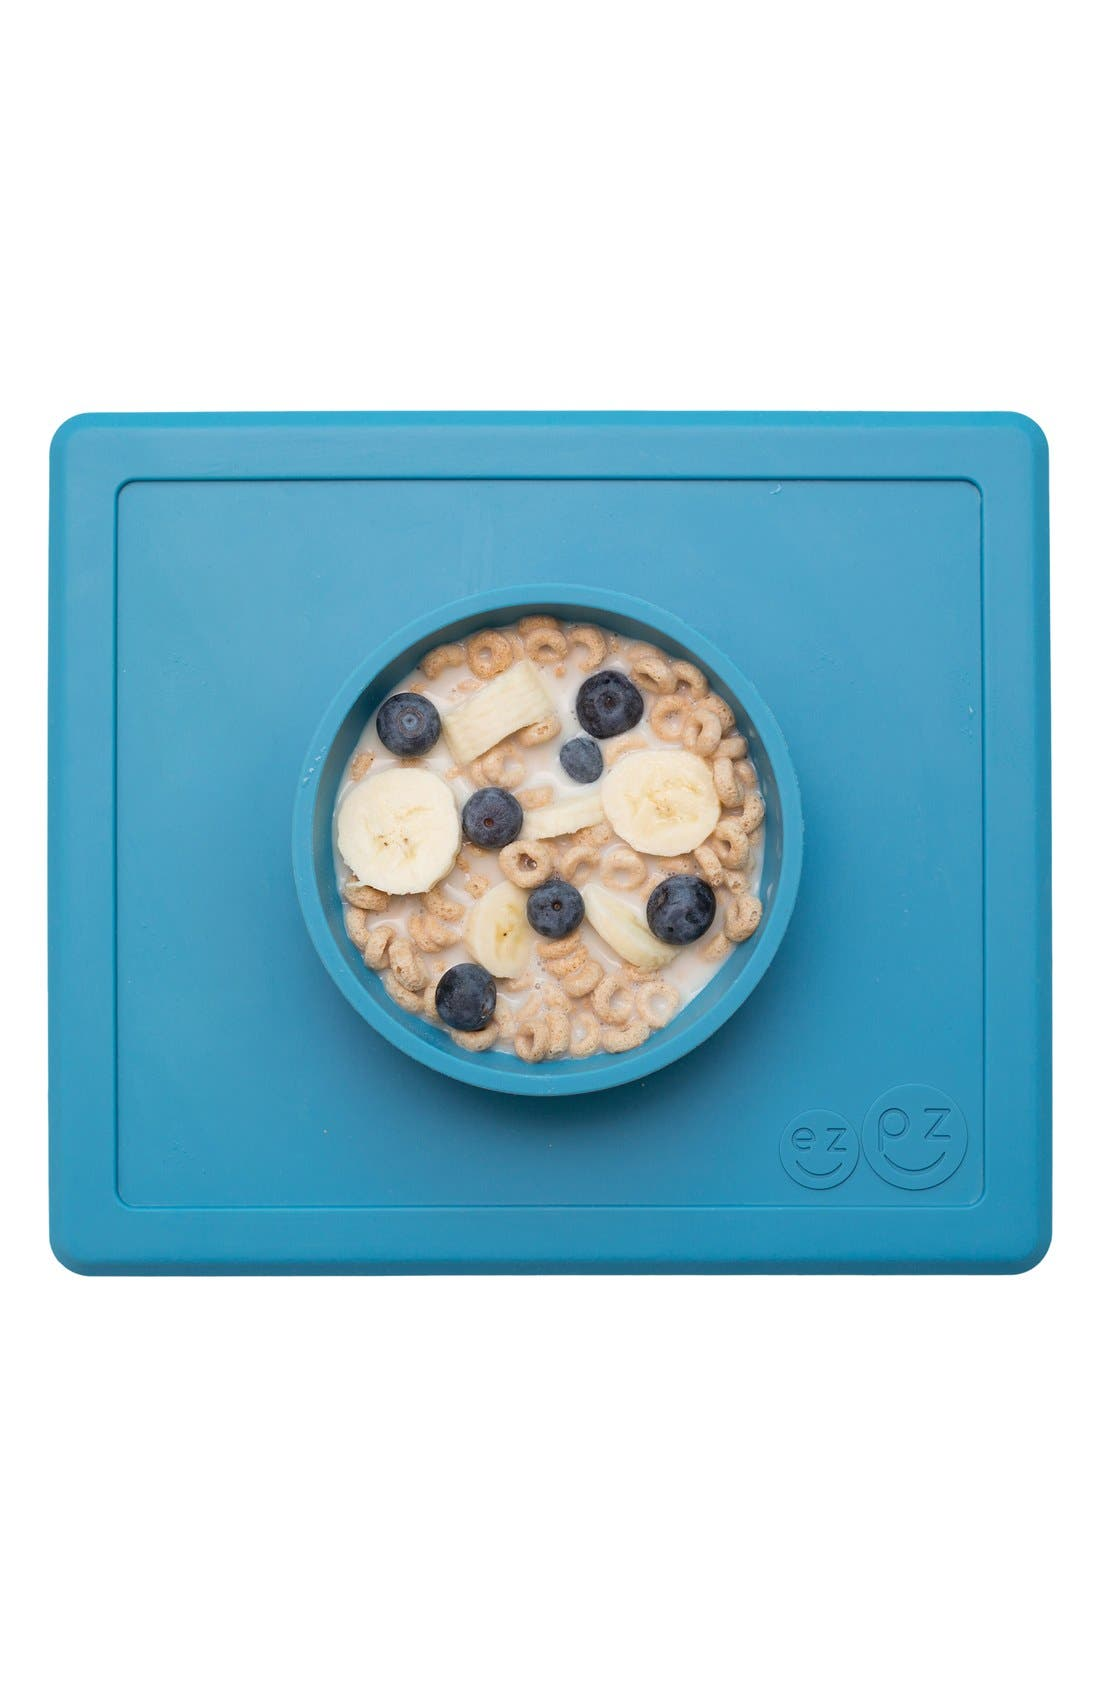 'Happy Bowl' Silicone Feeding Mat,                             Alternate thumbnail 3, color,                             Blue